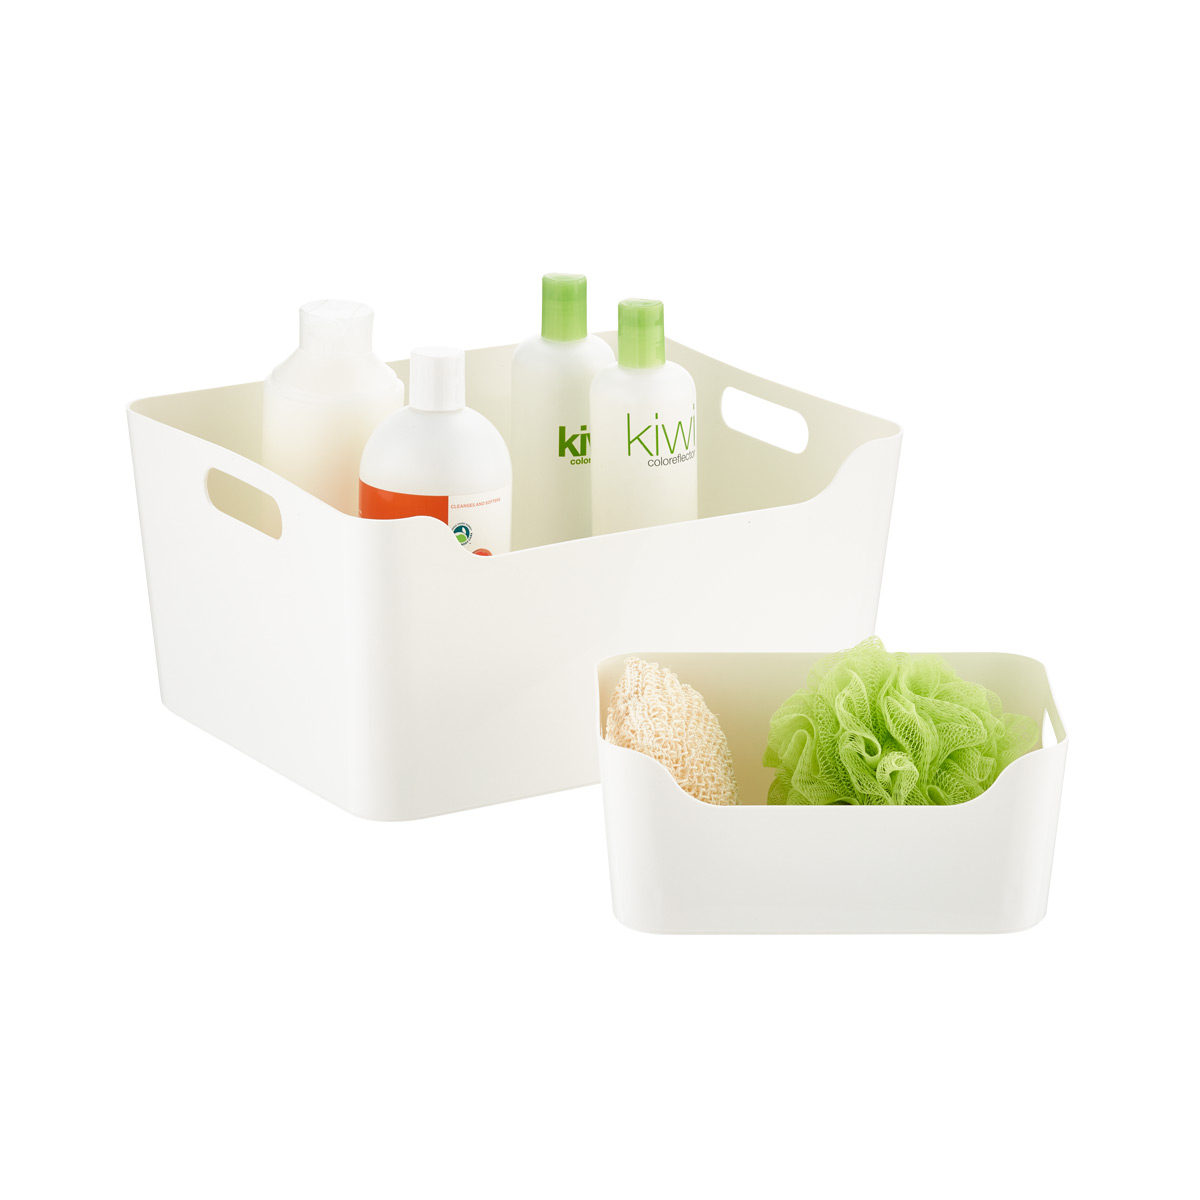 Best Kitchen Gallery: White Plastic Storage Bins With Handles The Container Store of Plastic Storage Containers on rachelxblog.com